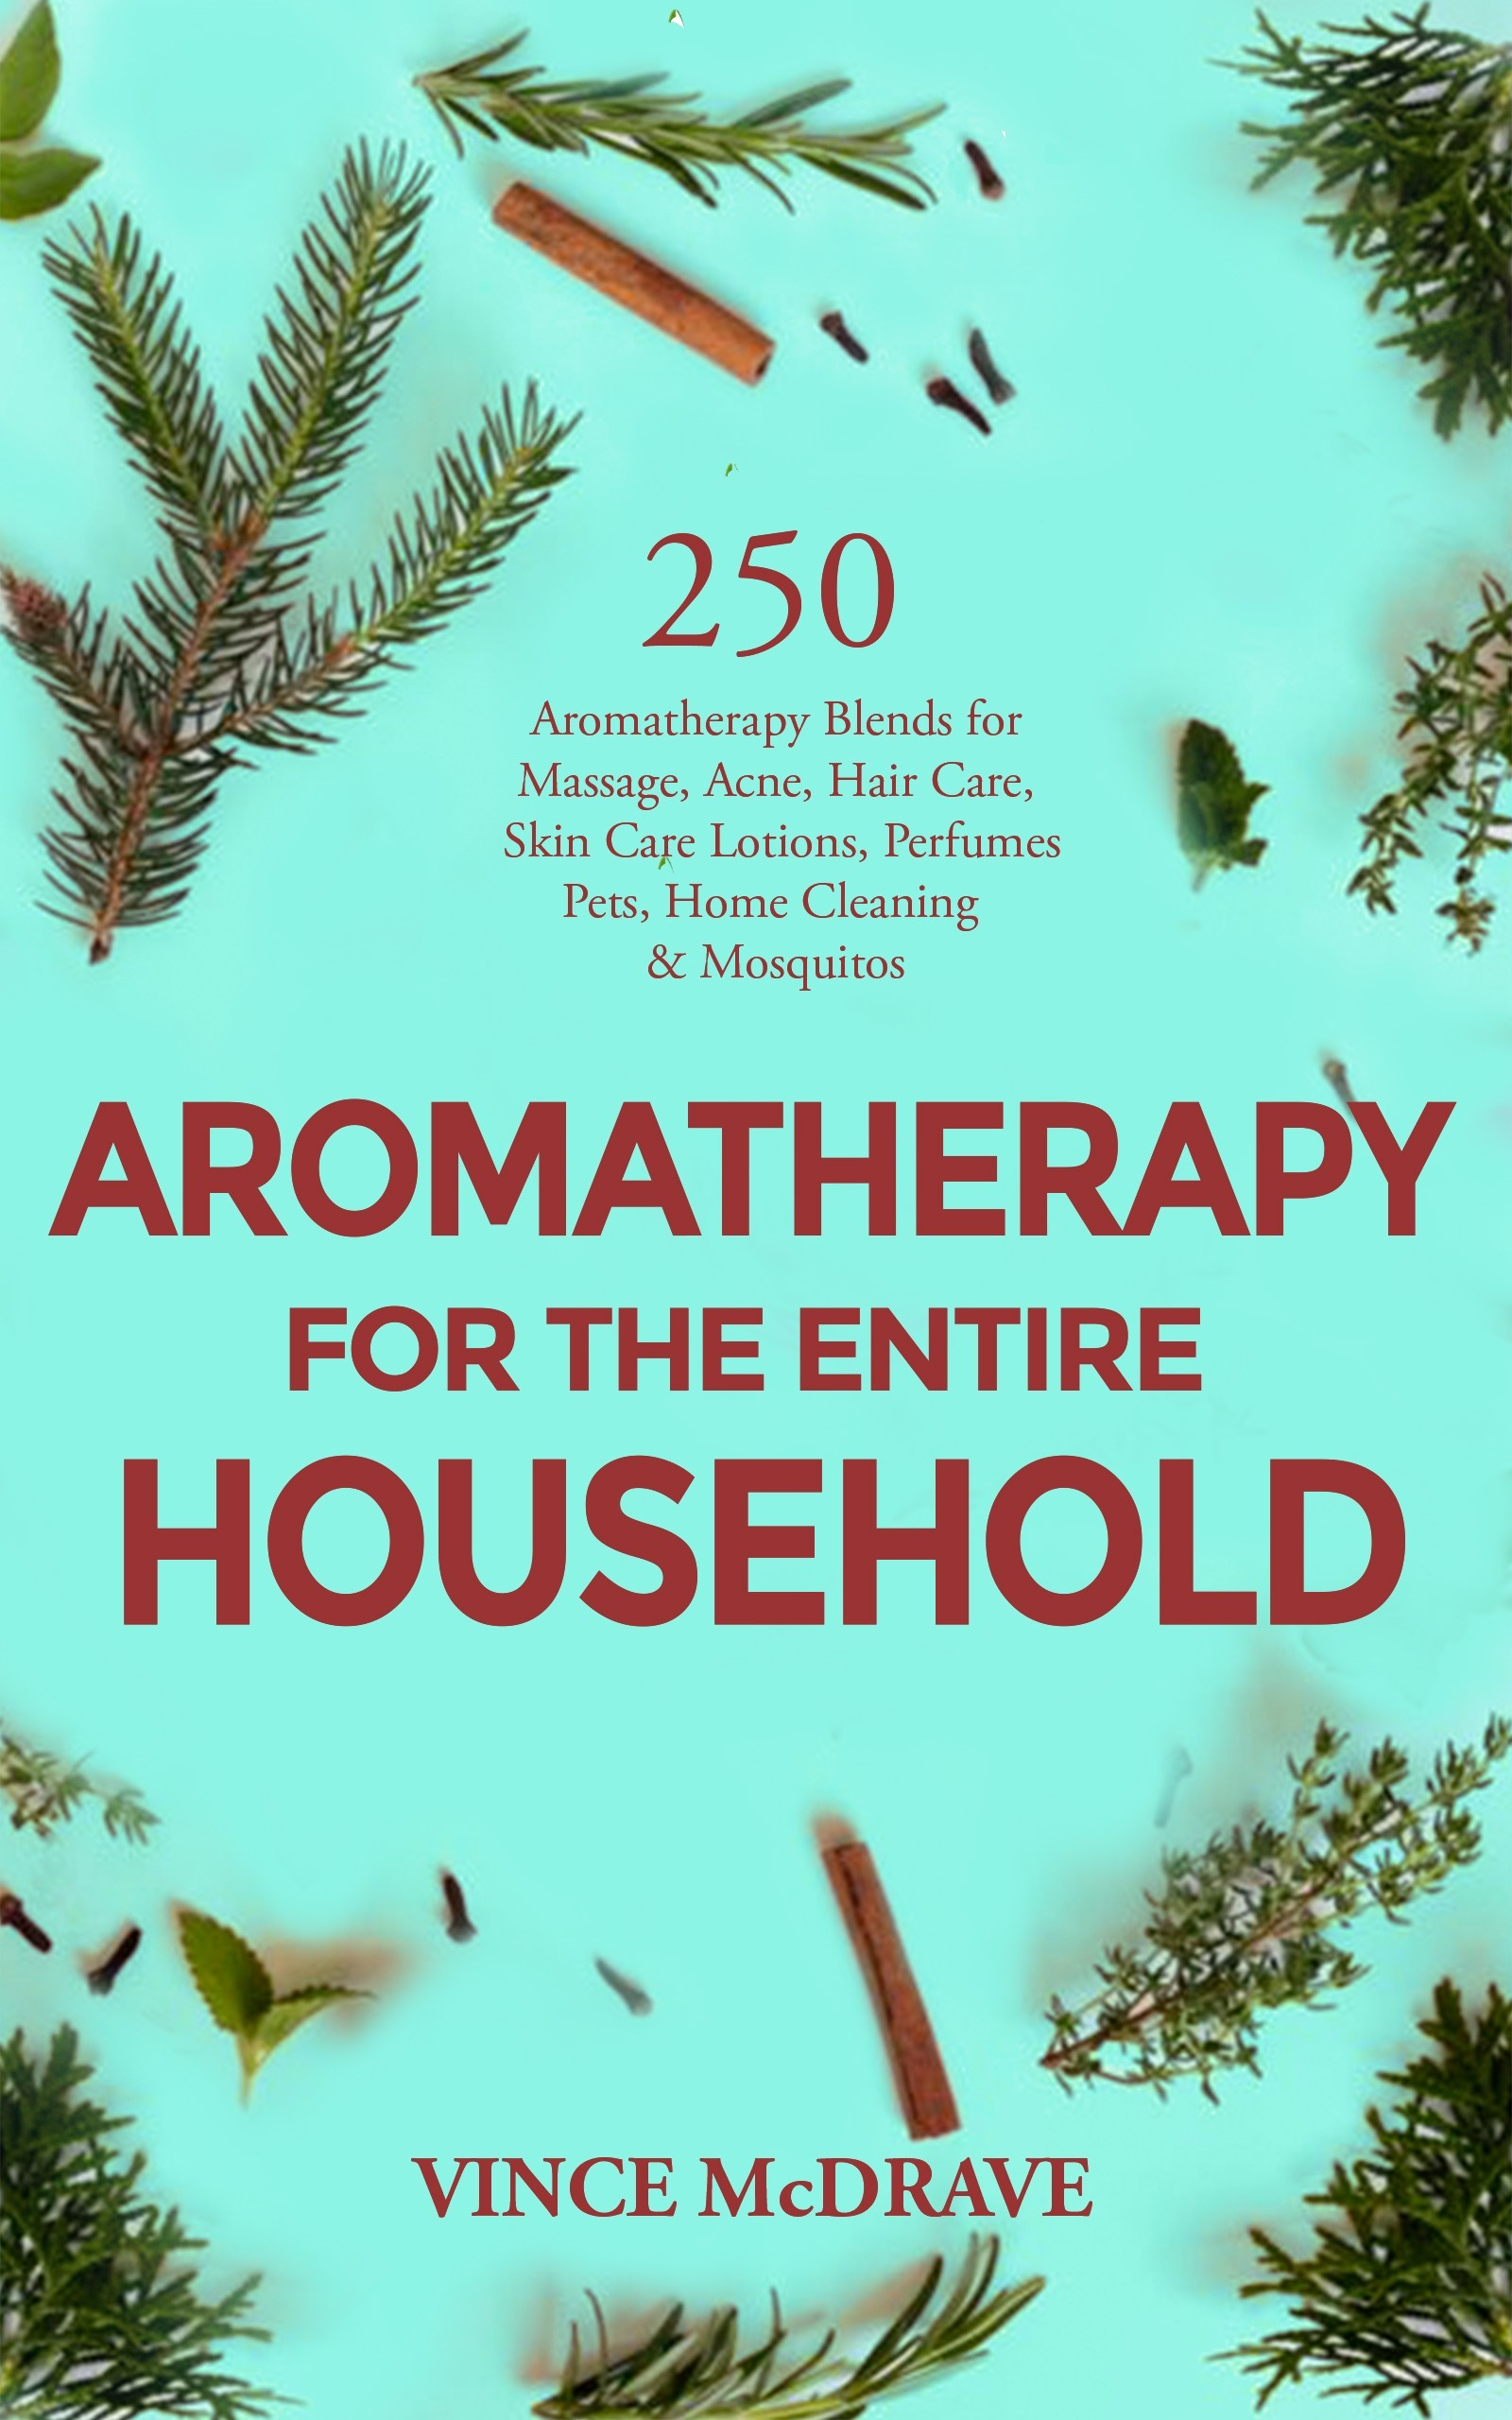 Aromatherapy for the Entire Household